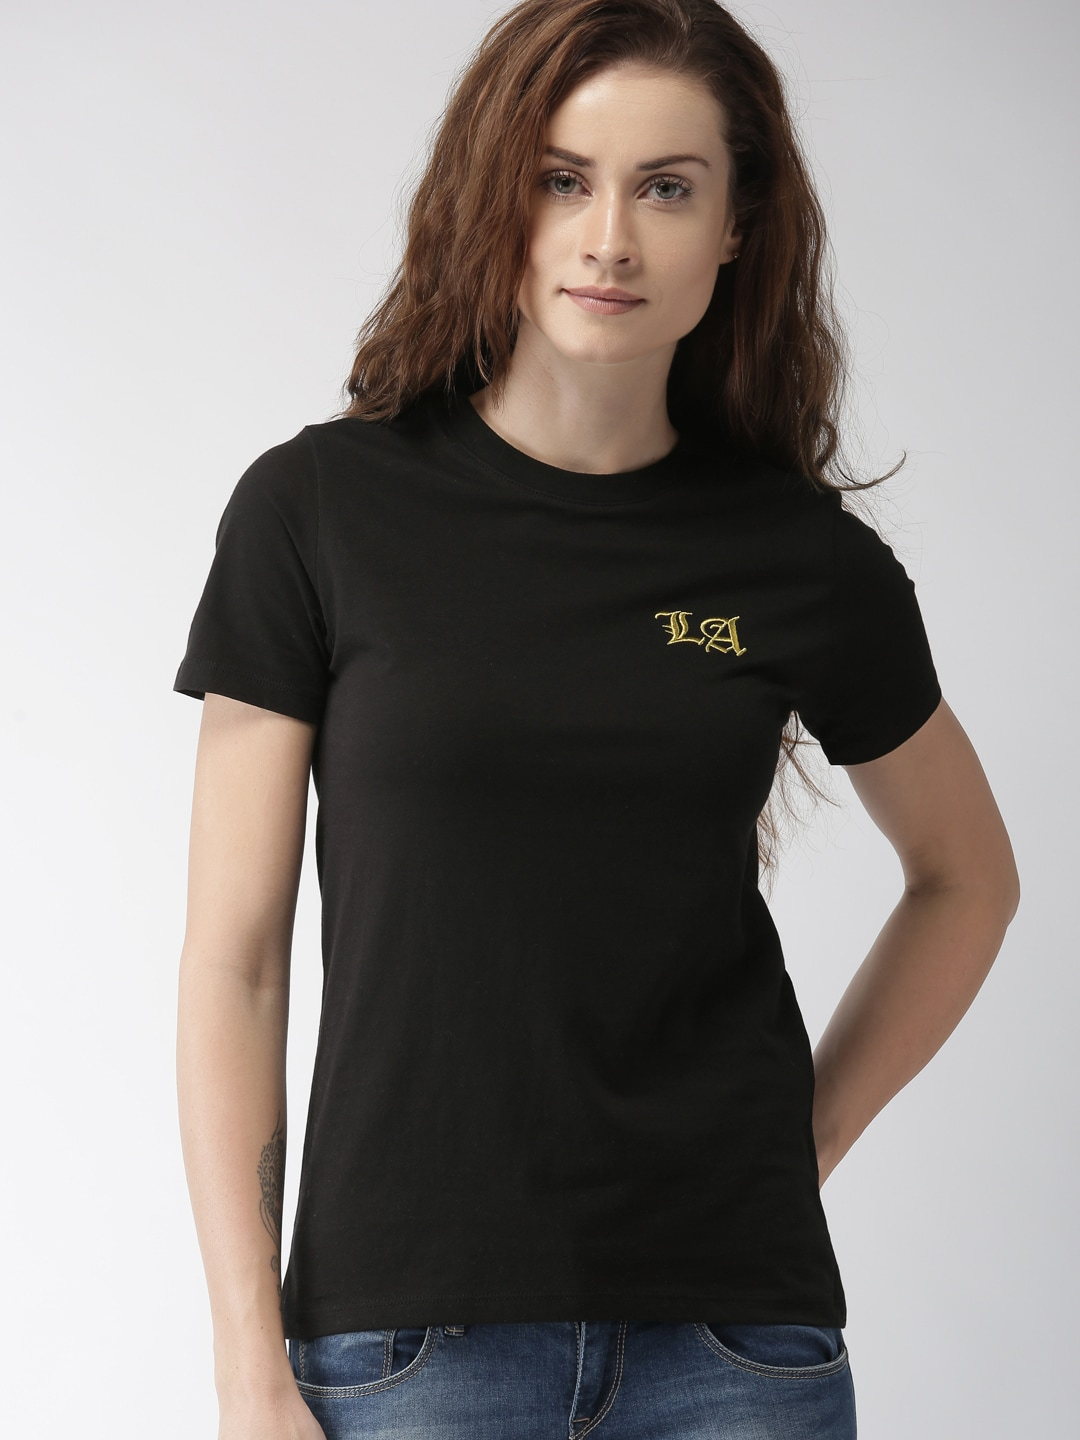 embroidered shirts buy embroidered shirts online in india